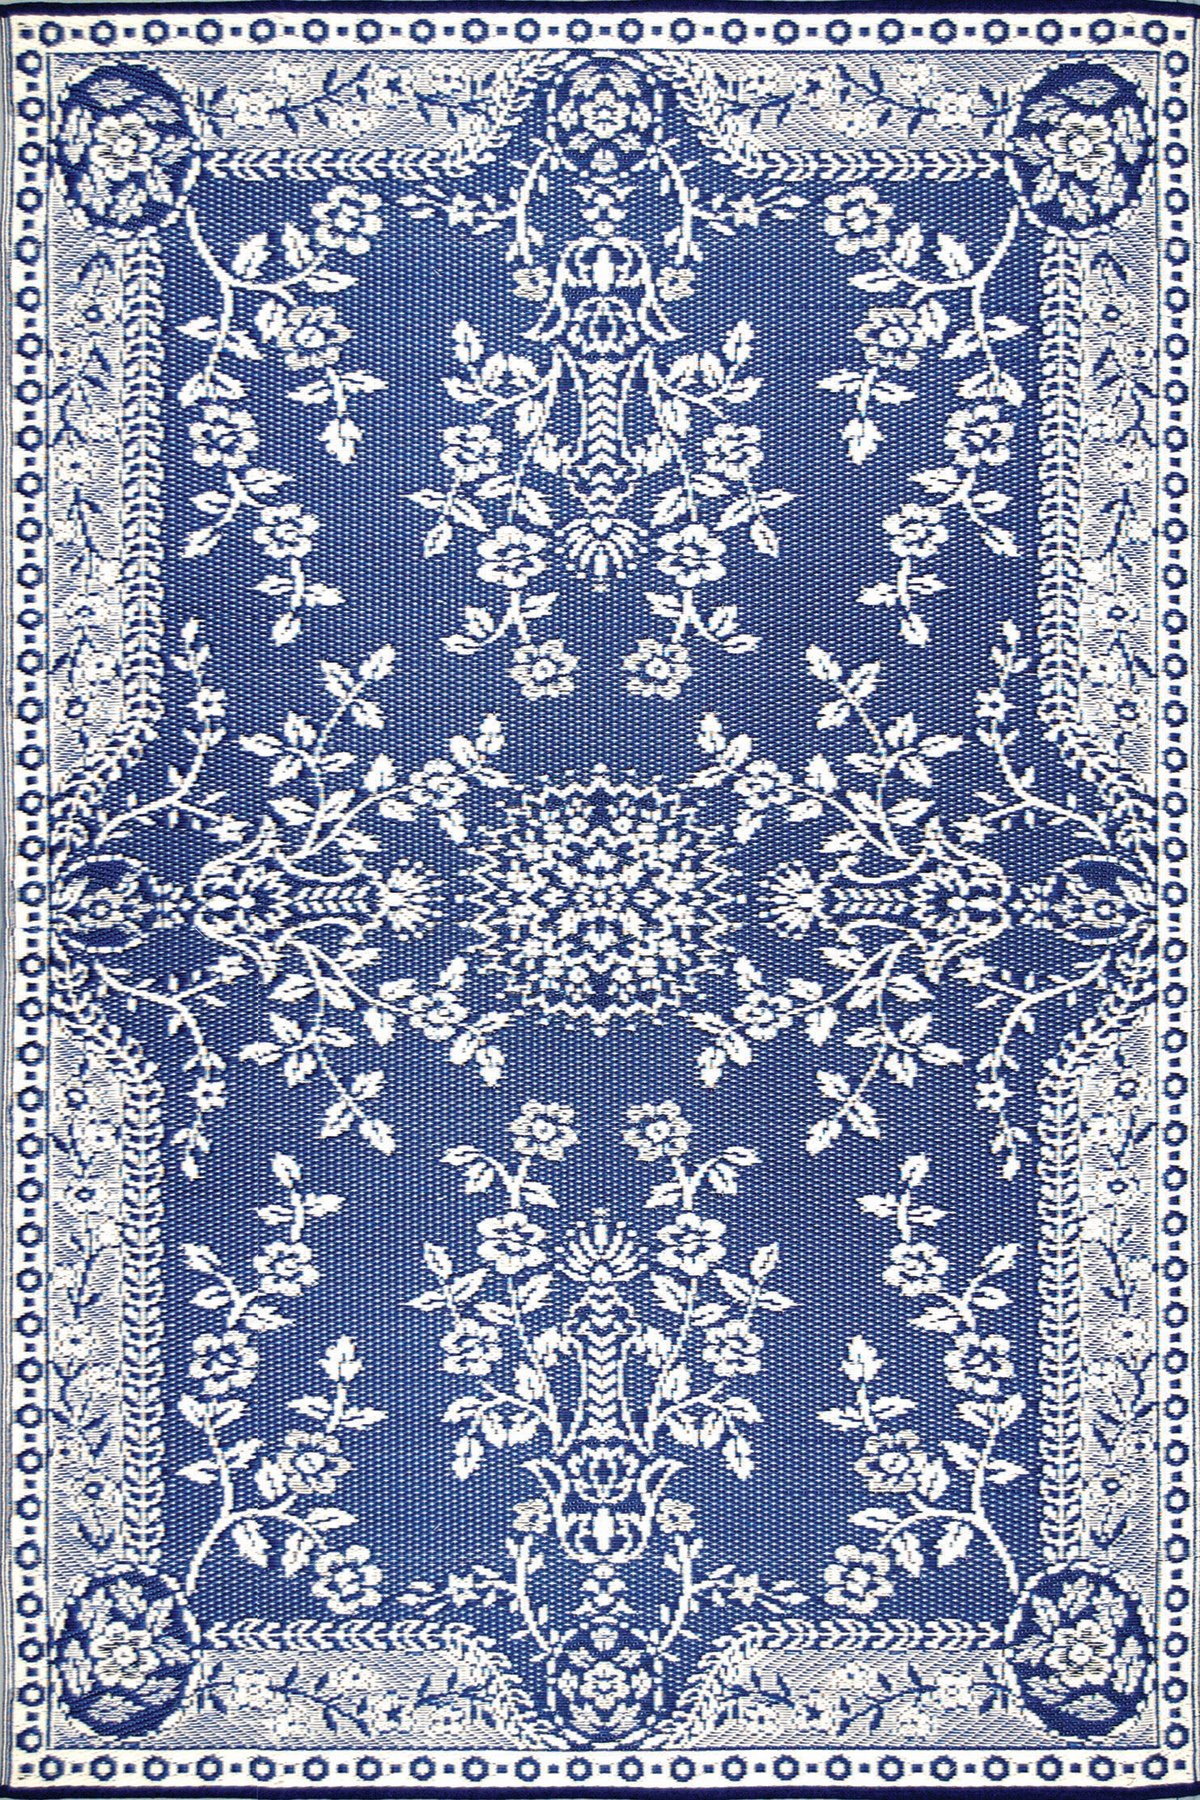 Mad Mats Garland Indoor/Outdoor Floor Mat, 6 by 9-Feet, Blue and White by Mad Mats®